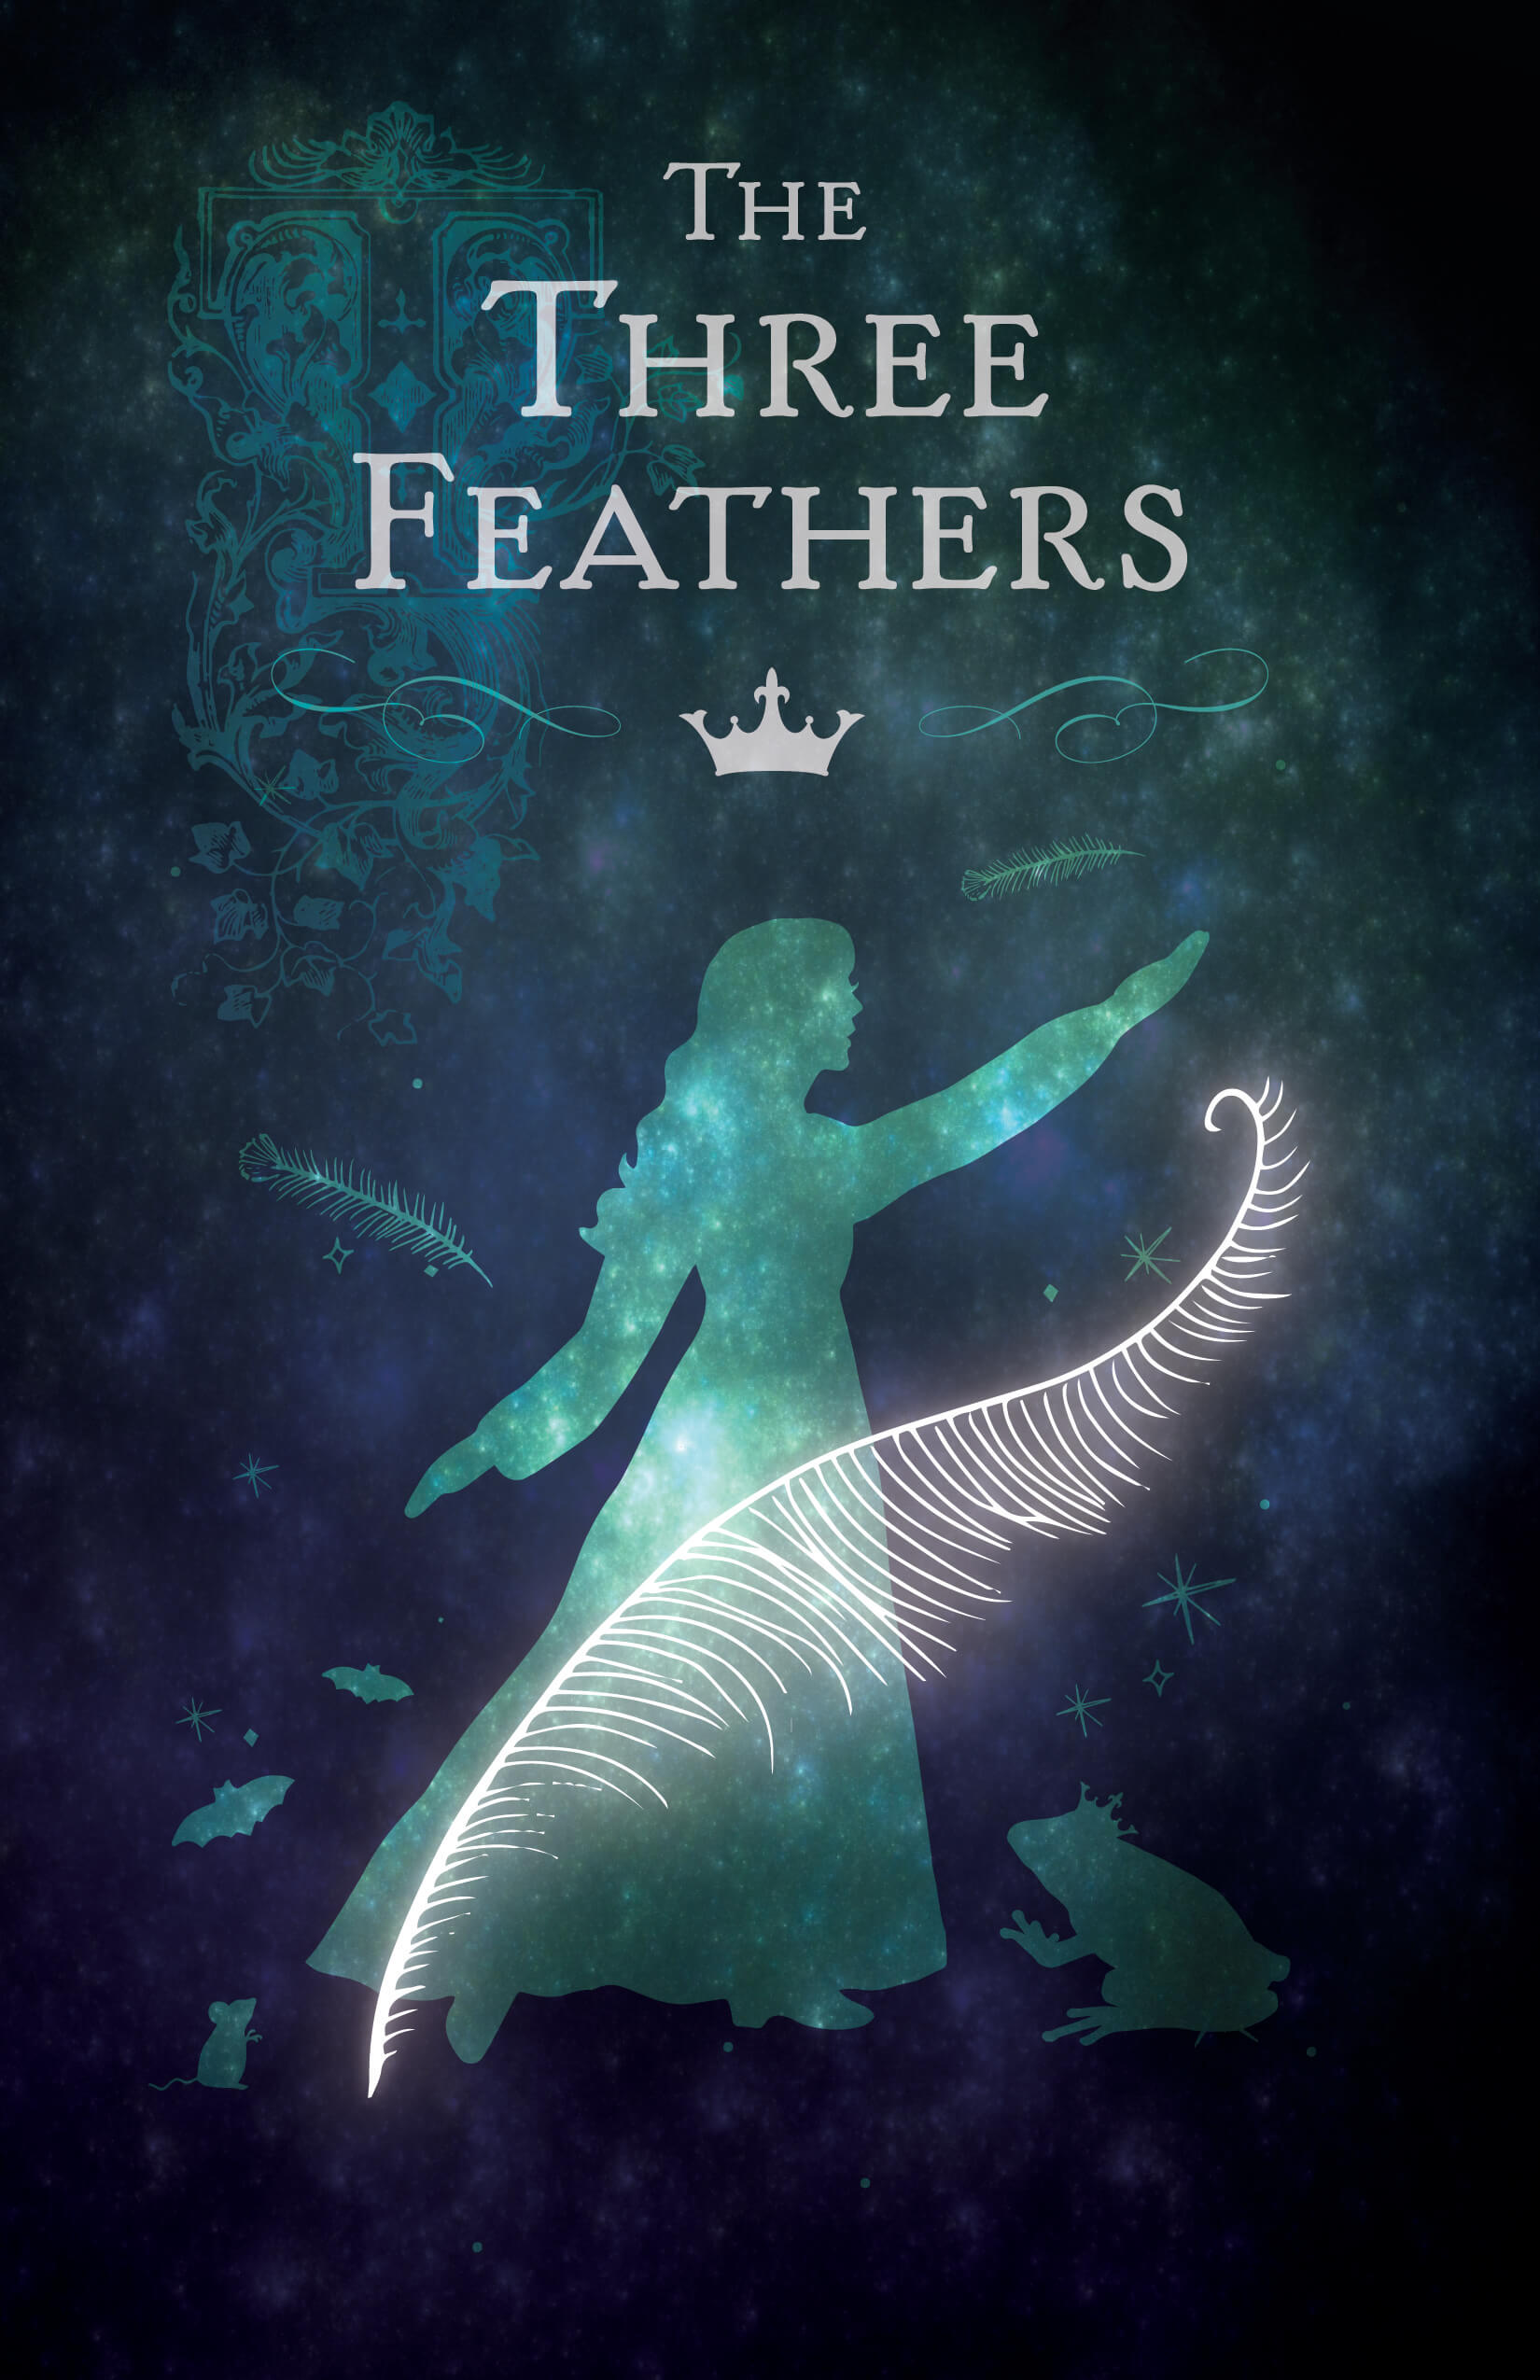 Virginia Tech School of Performing Arts show poster - The Three Feathers